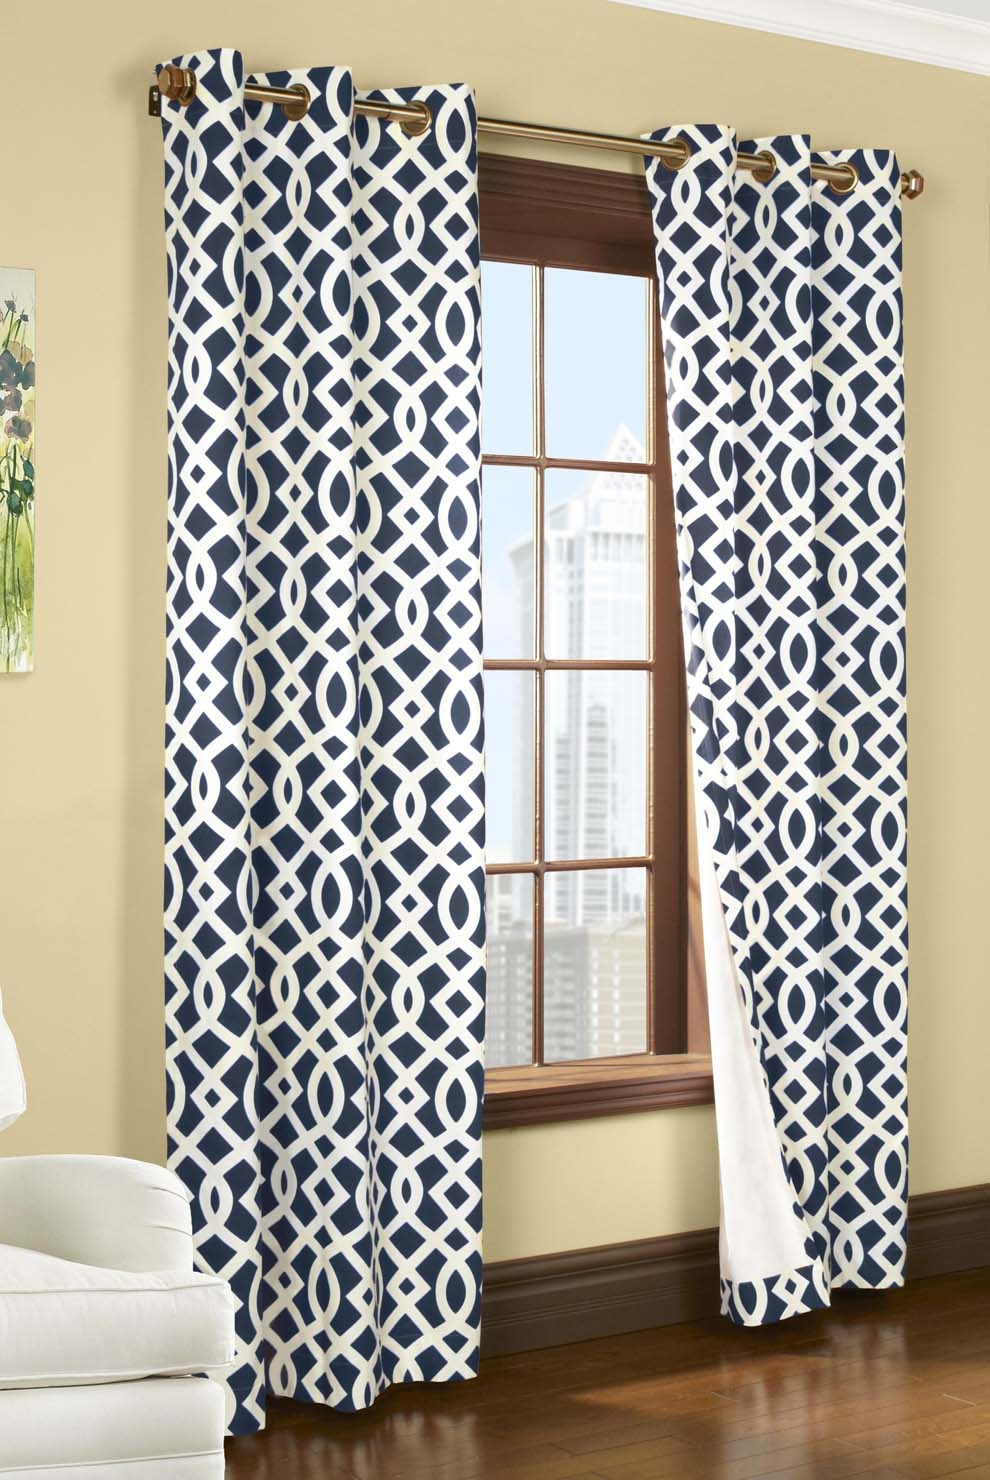 Trellis Insulated Grommet Top Curtains Thermal Drapes Trellis Throughout Turquoise Trellis Curtains (Image 17 of 25)